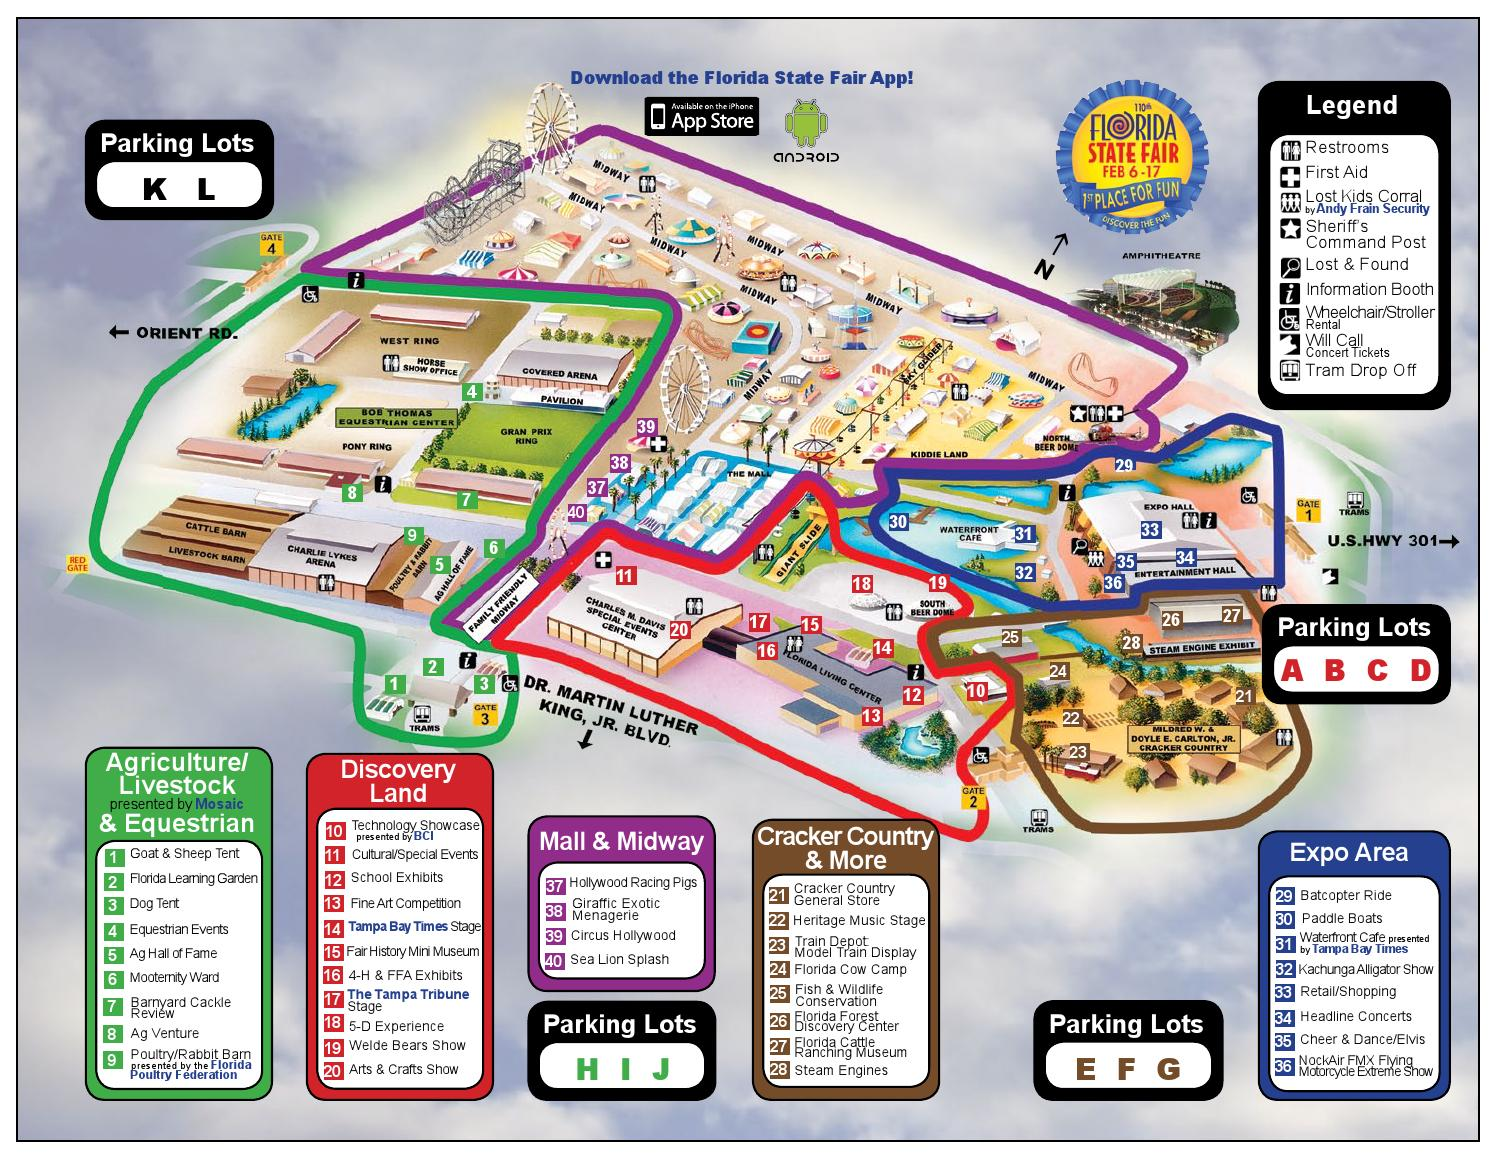 2014 Florida State Fair Map By Wfla Newschannel8 Issuu